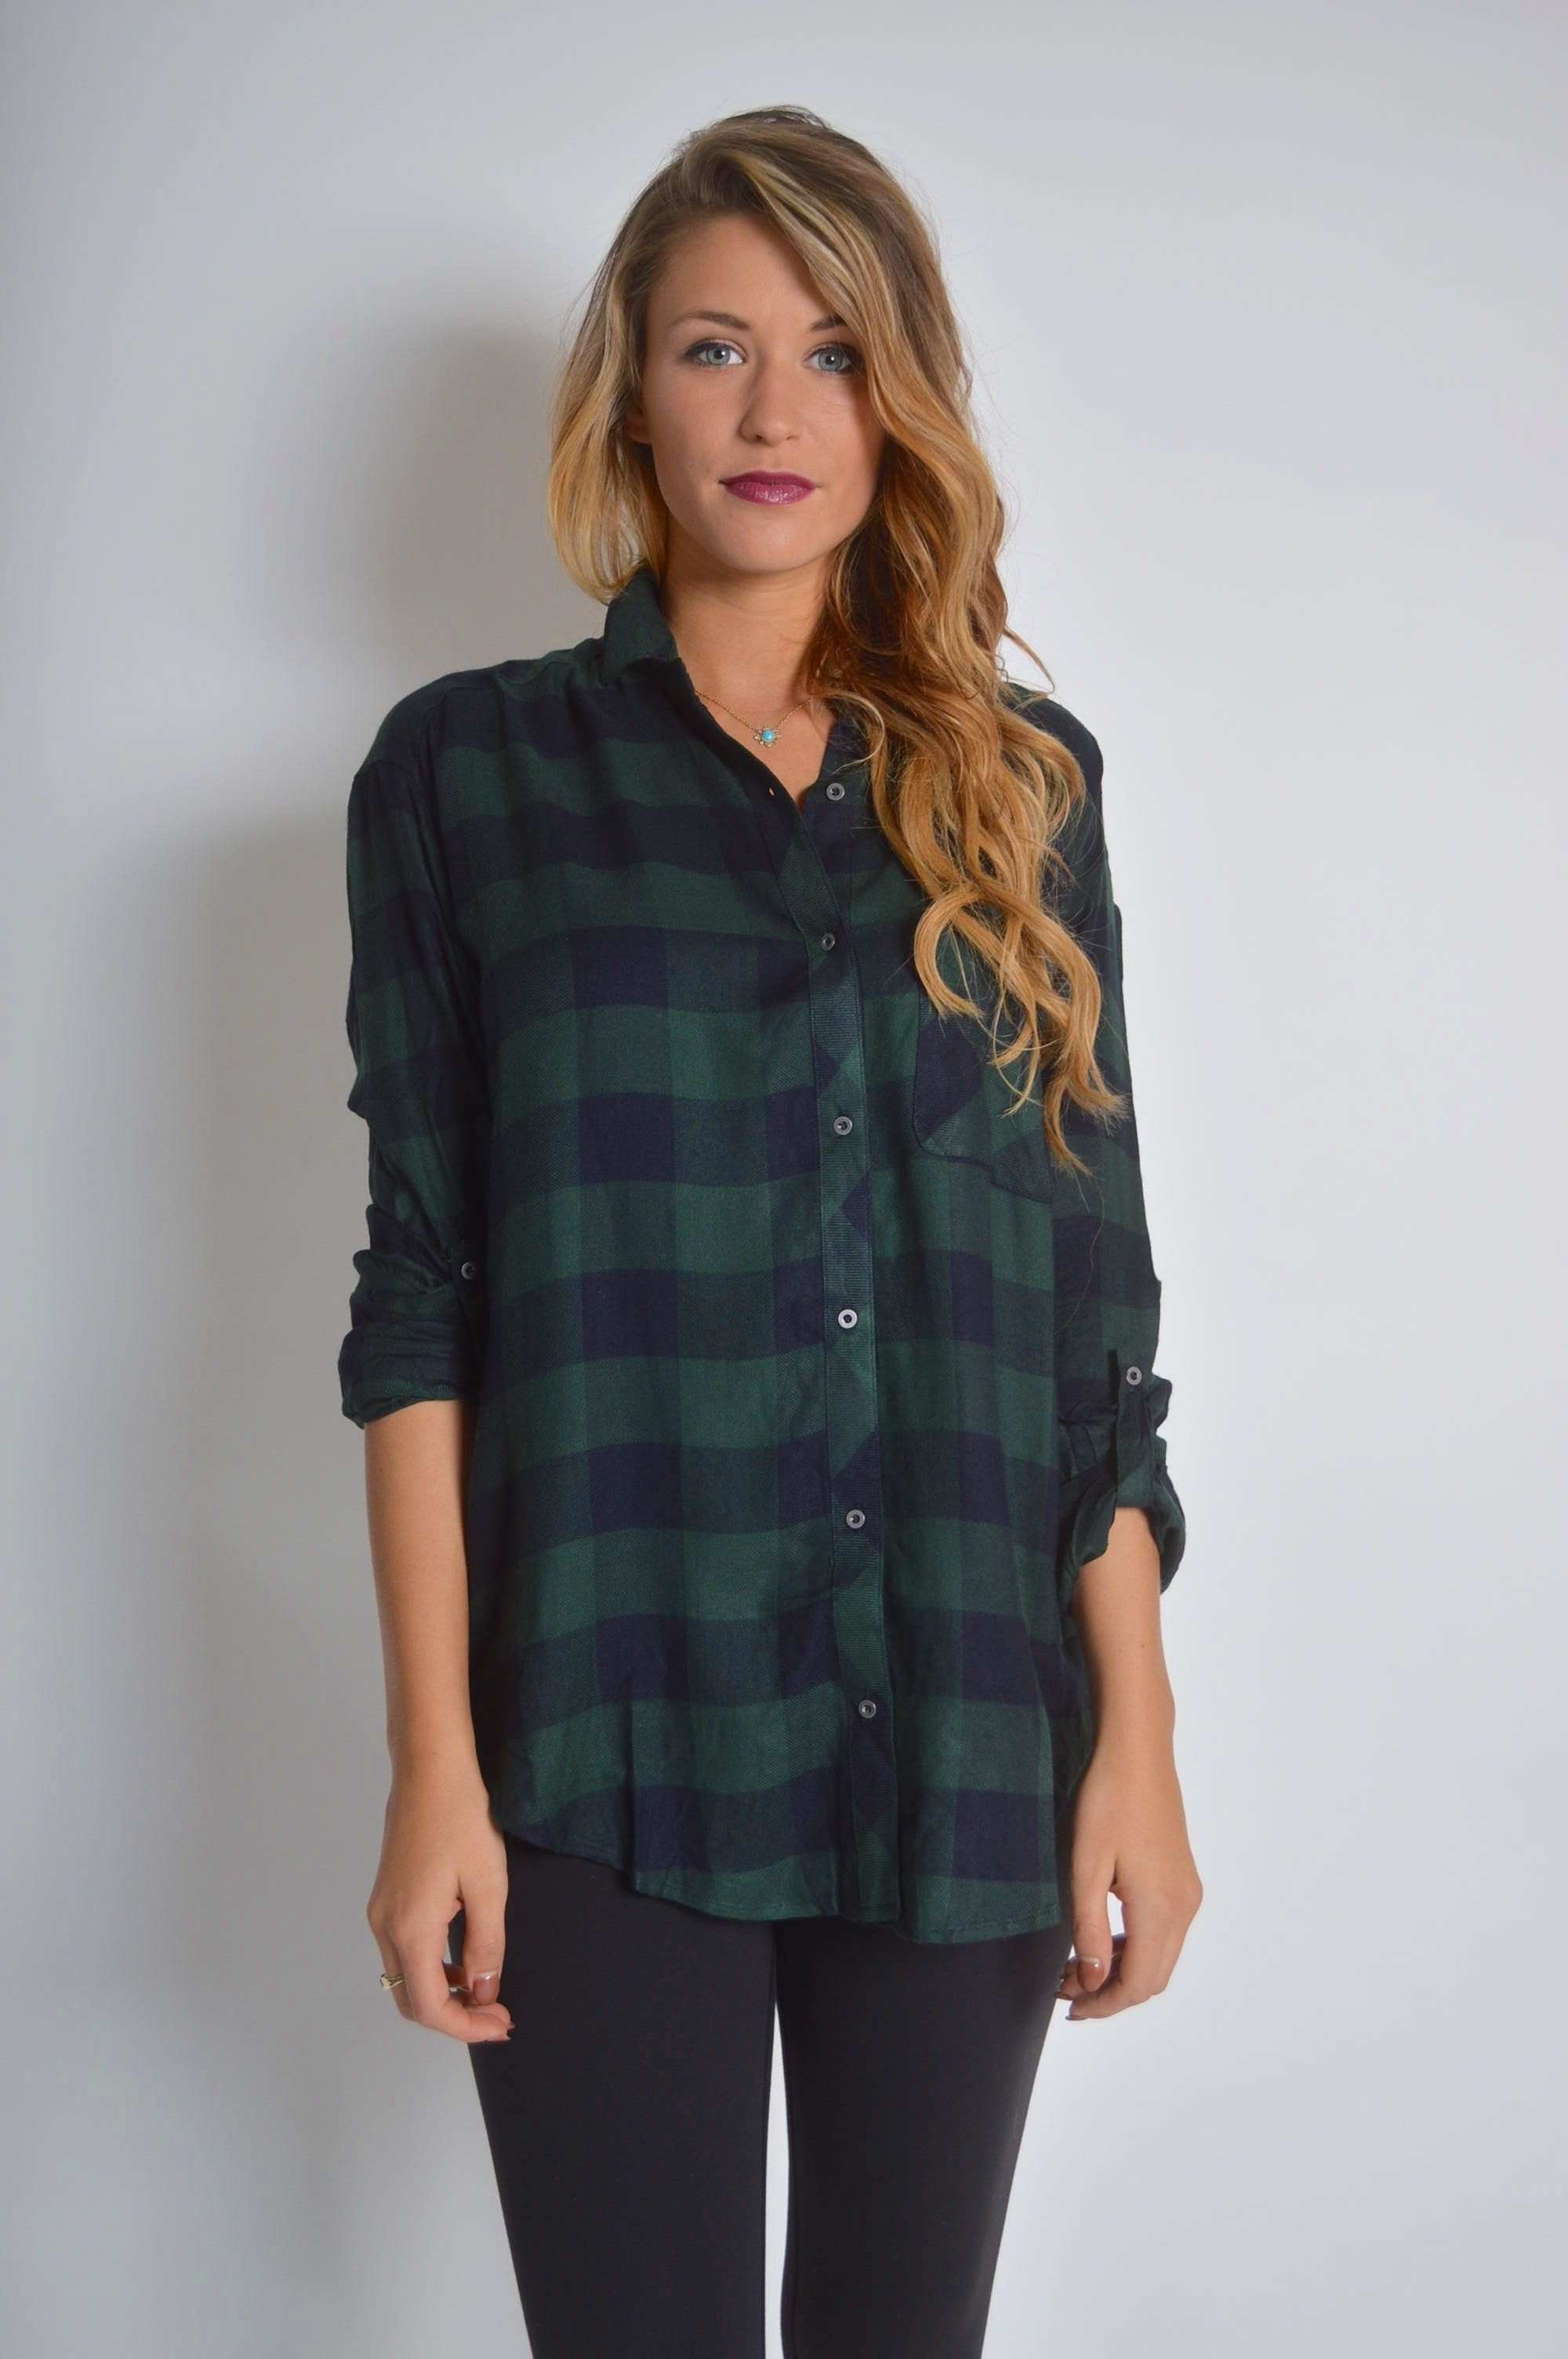 Green Gingham Flannel | $36 | Foi Clothing | Gingham Pattern Basic Collar Button Down Roll Tab Sleeve | Plaid Shirt | Navy and Forest Green Checkered Plaid | Women's Fashion Flannel | Fall Flannels | Holiday Flannels | good, i like your one.